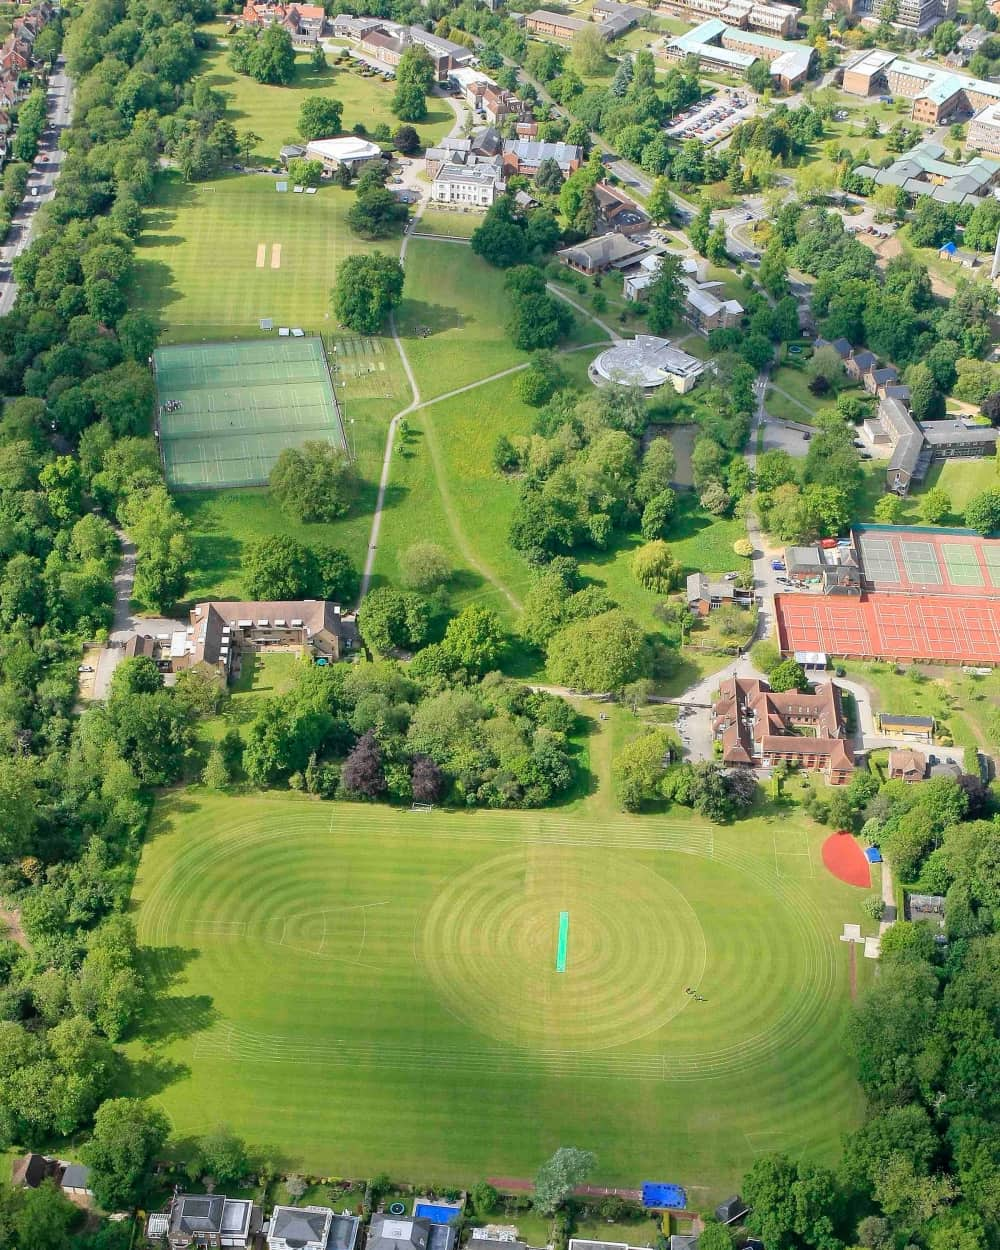 Leighton park Aerial 65 acres Reading Berkshire Green Lung